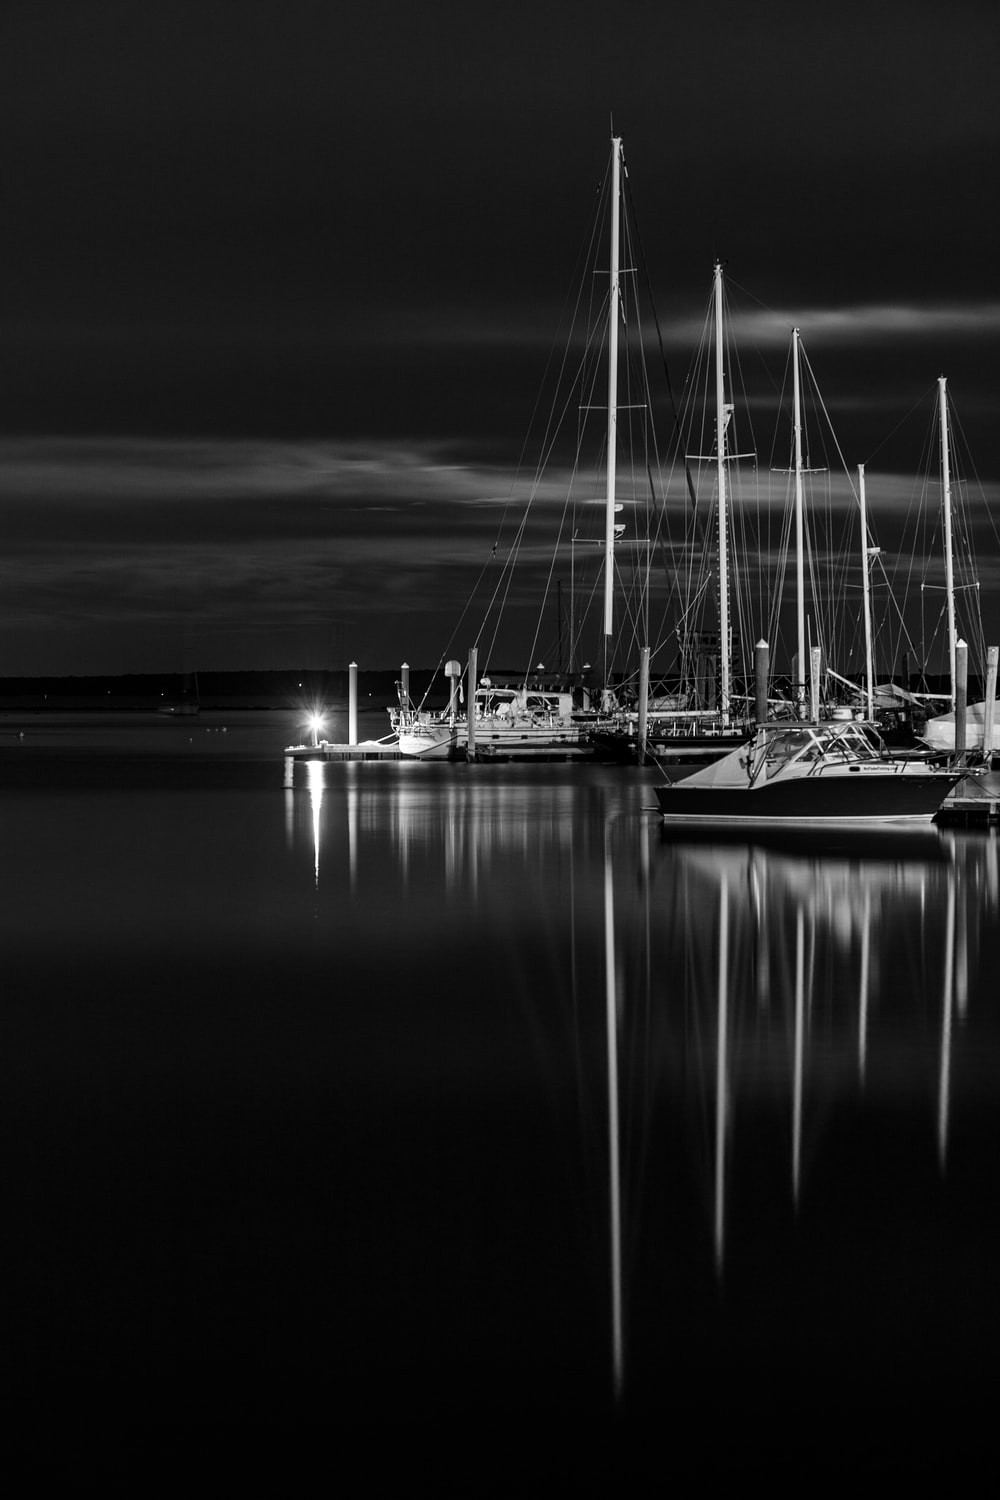 greyscale photo of boat on top of water